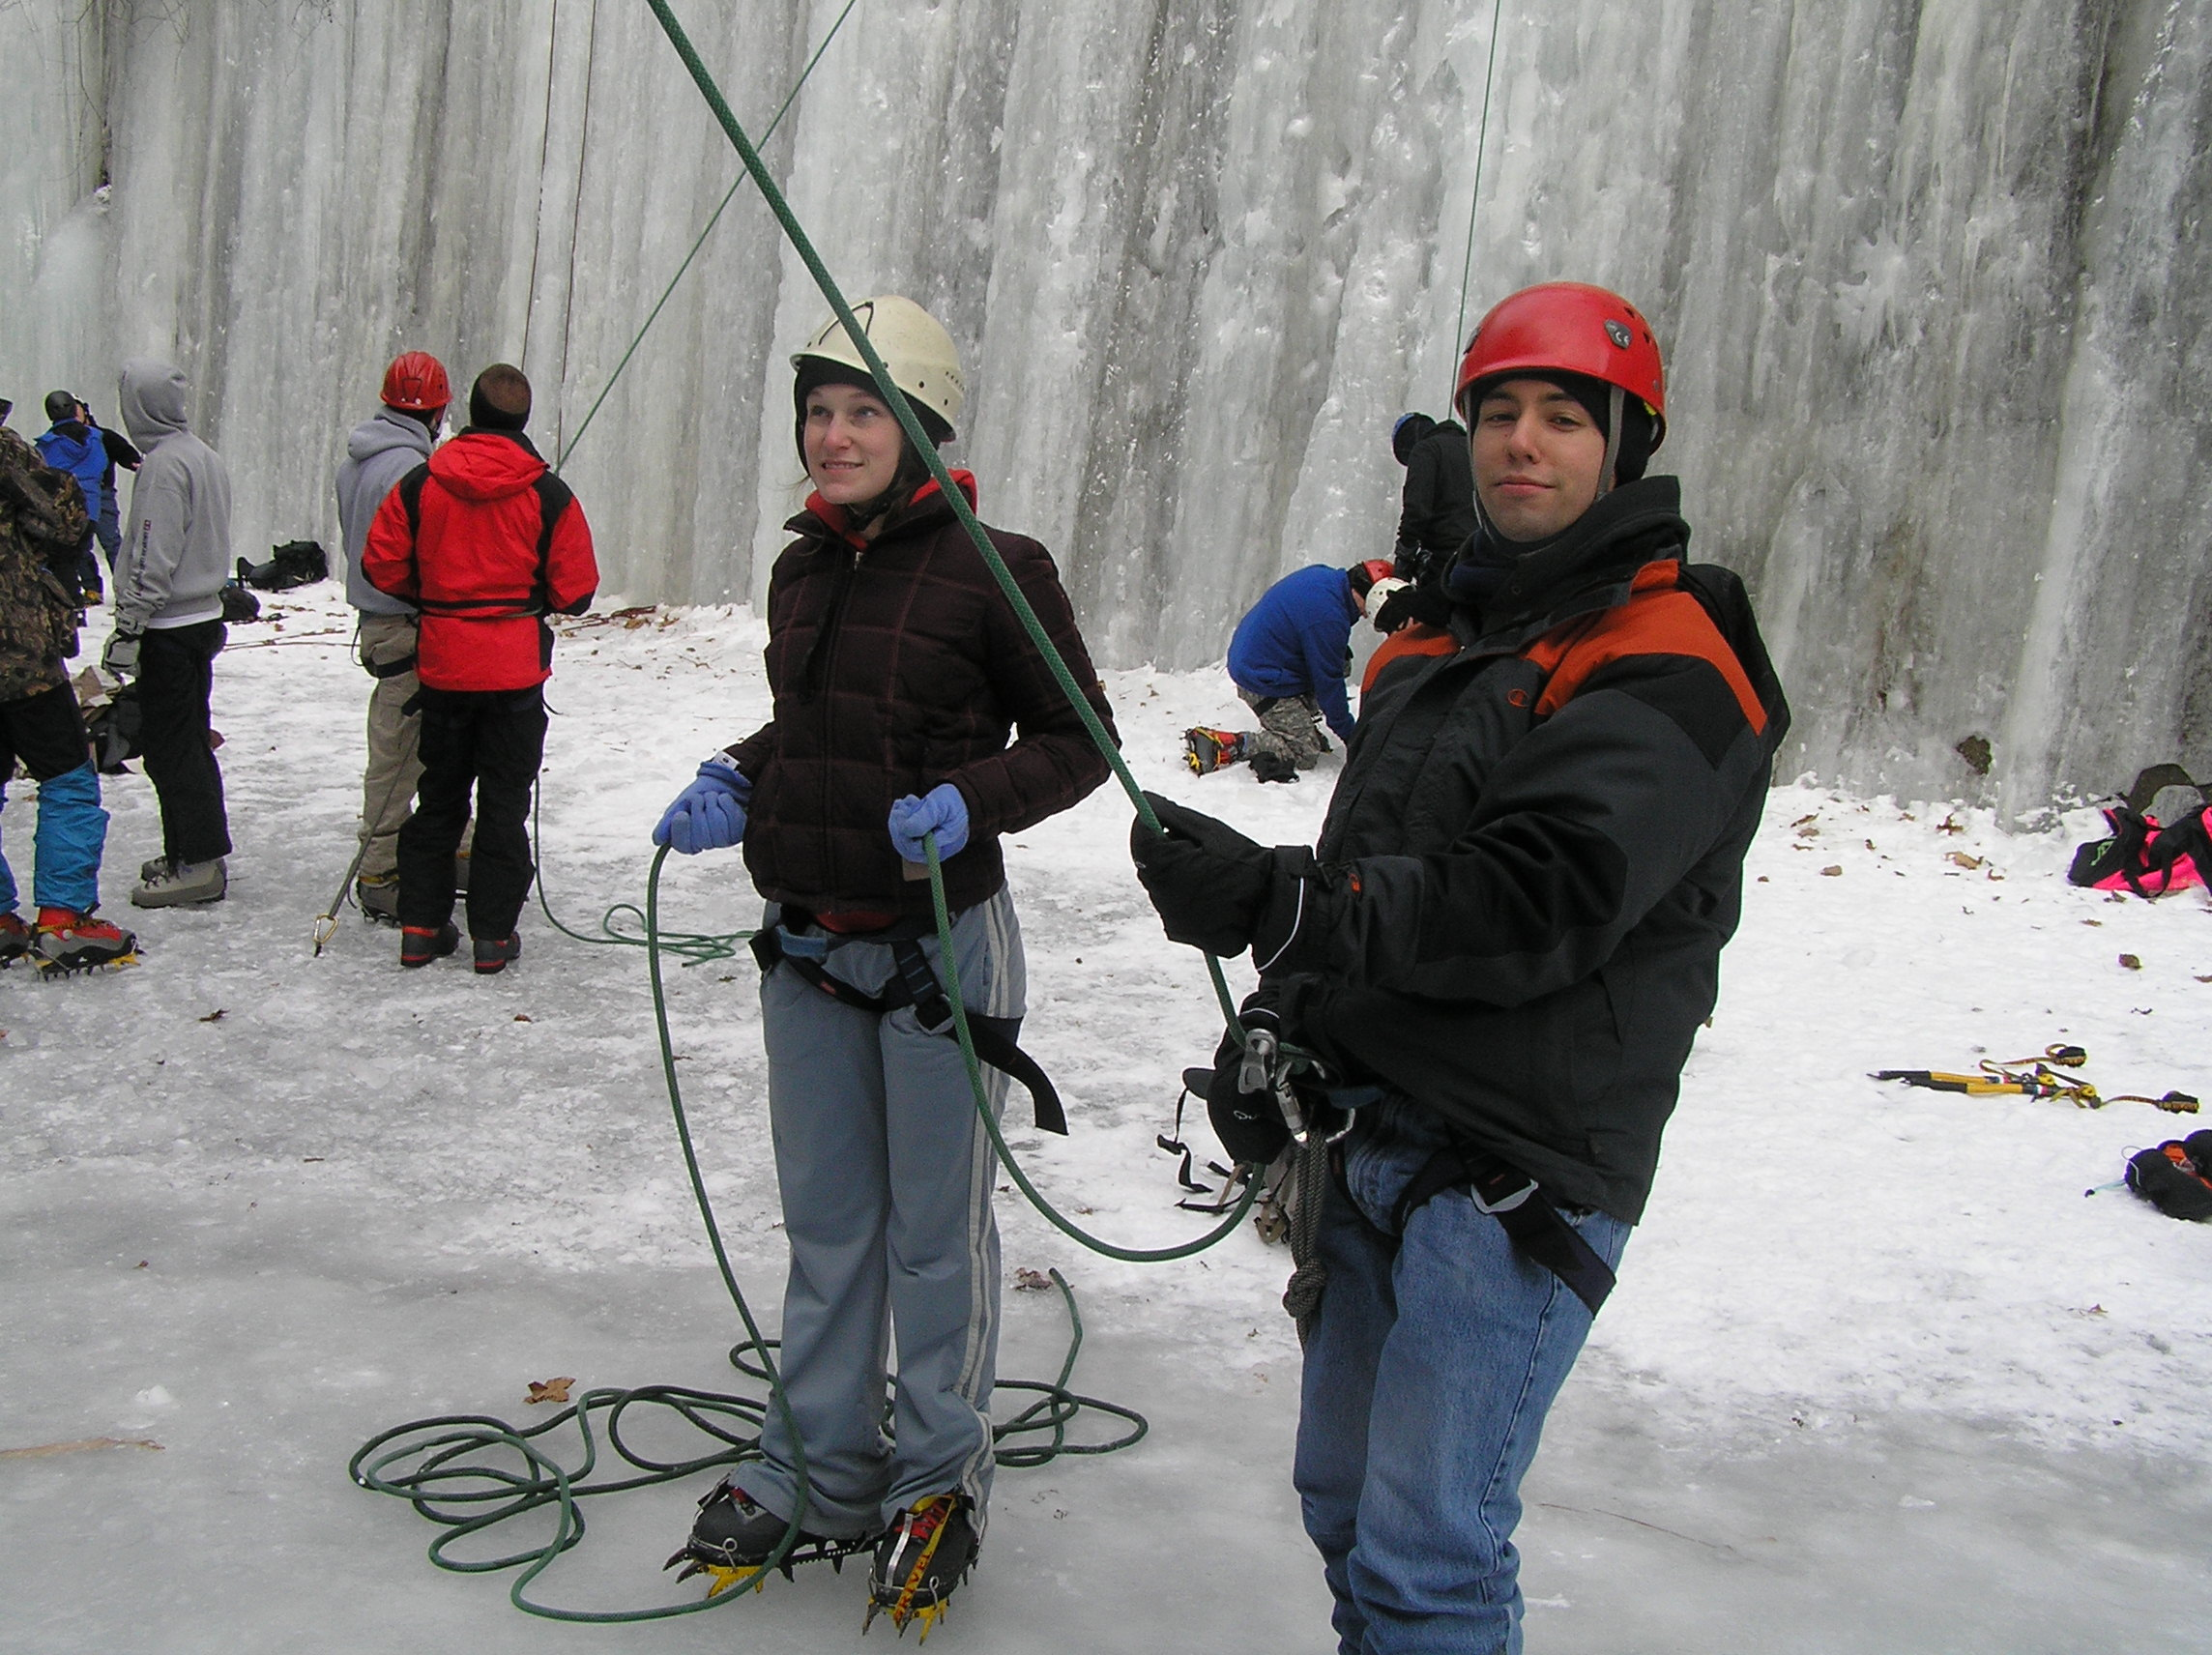 Umass Lowell students in the ice canyon